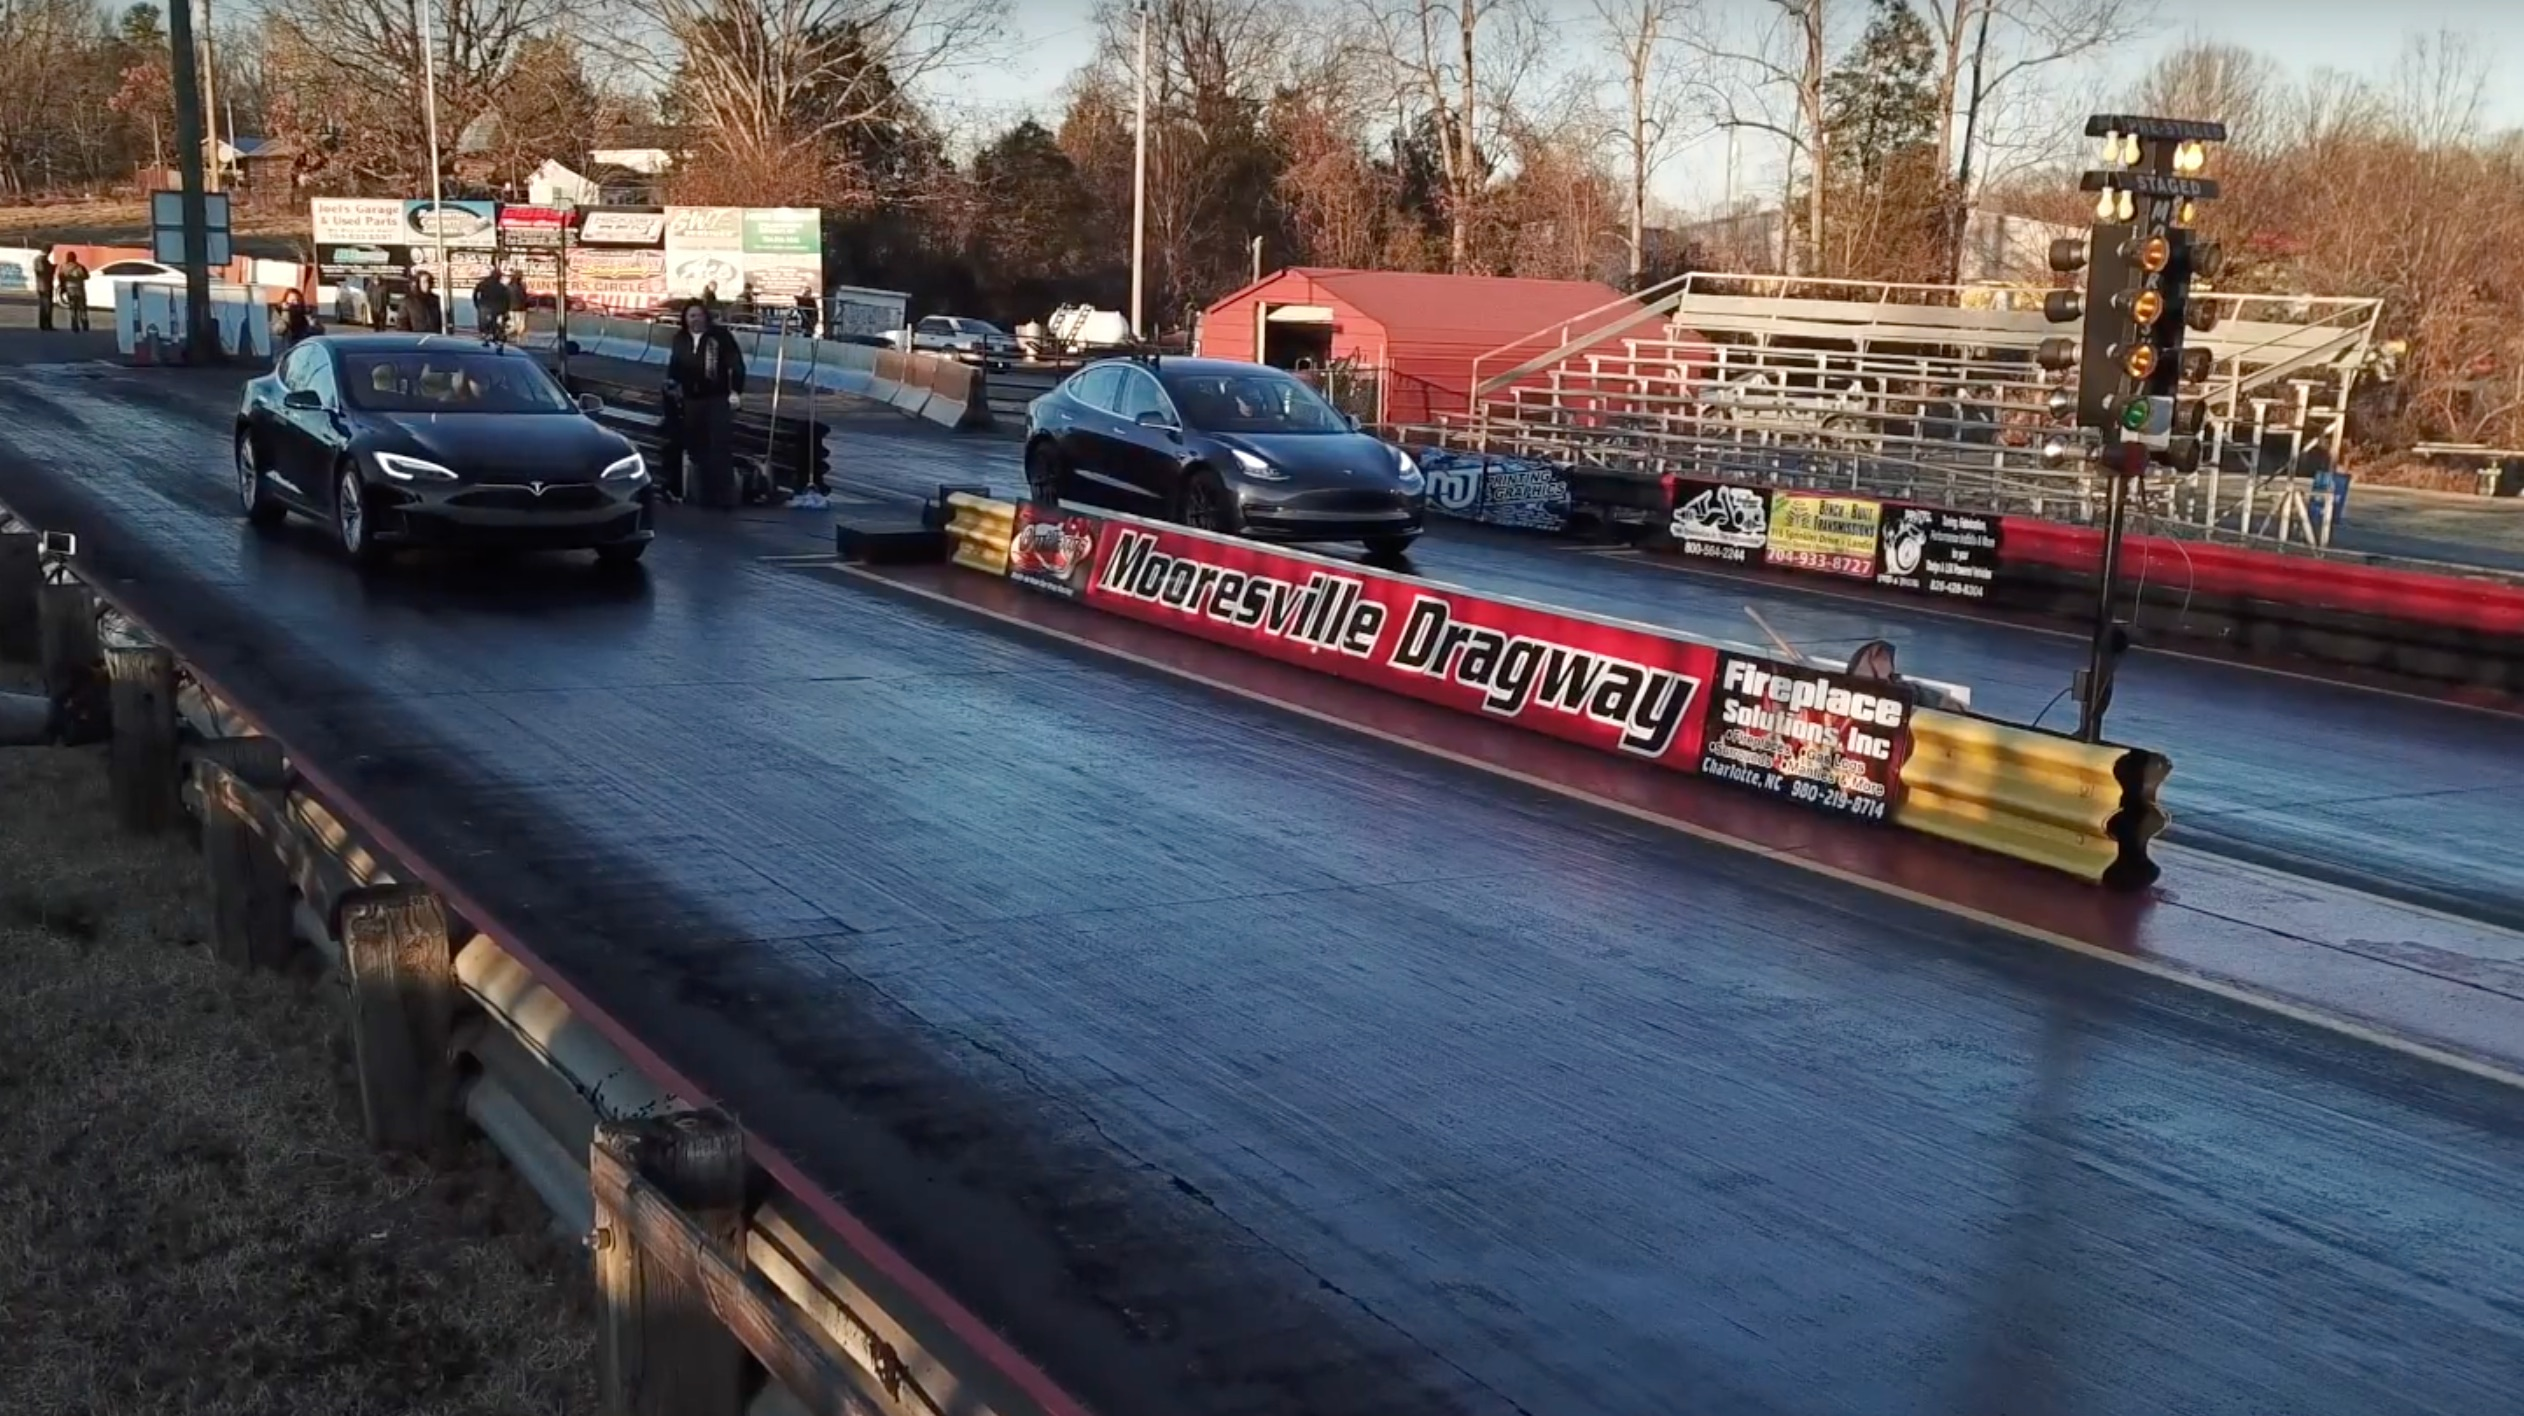 tesla-model-3-vs-model-s-75d-drag-race